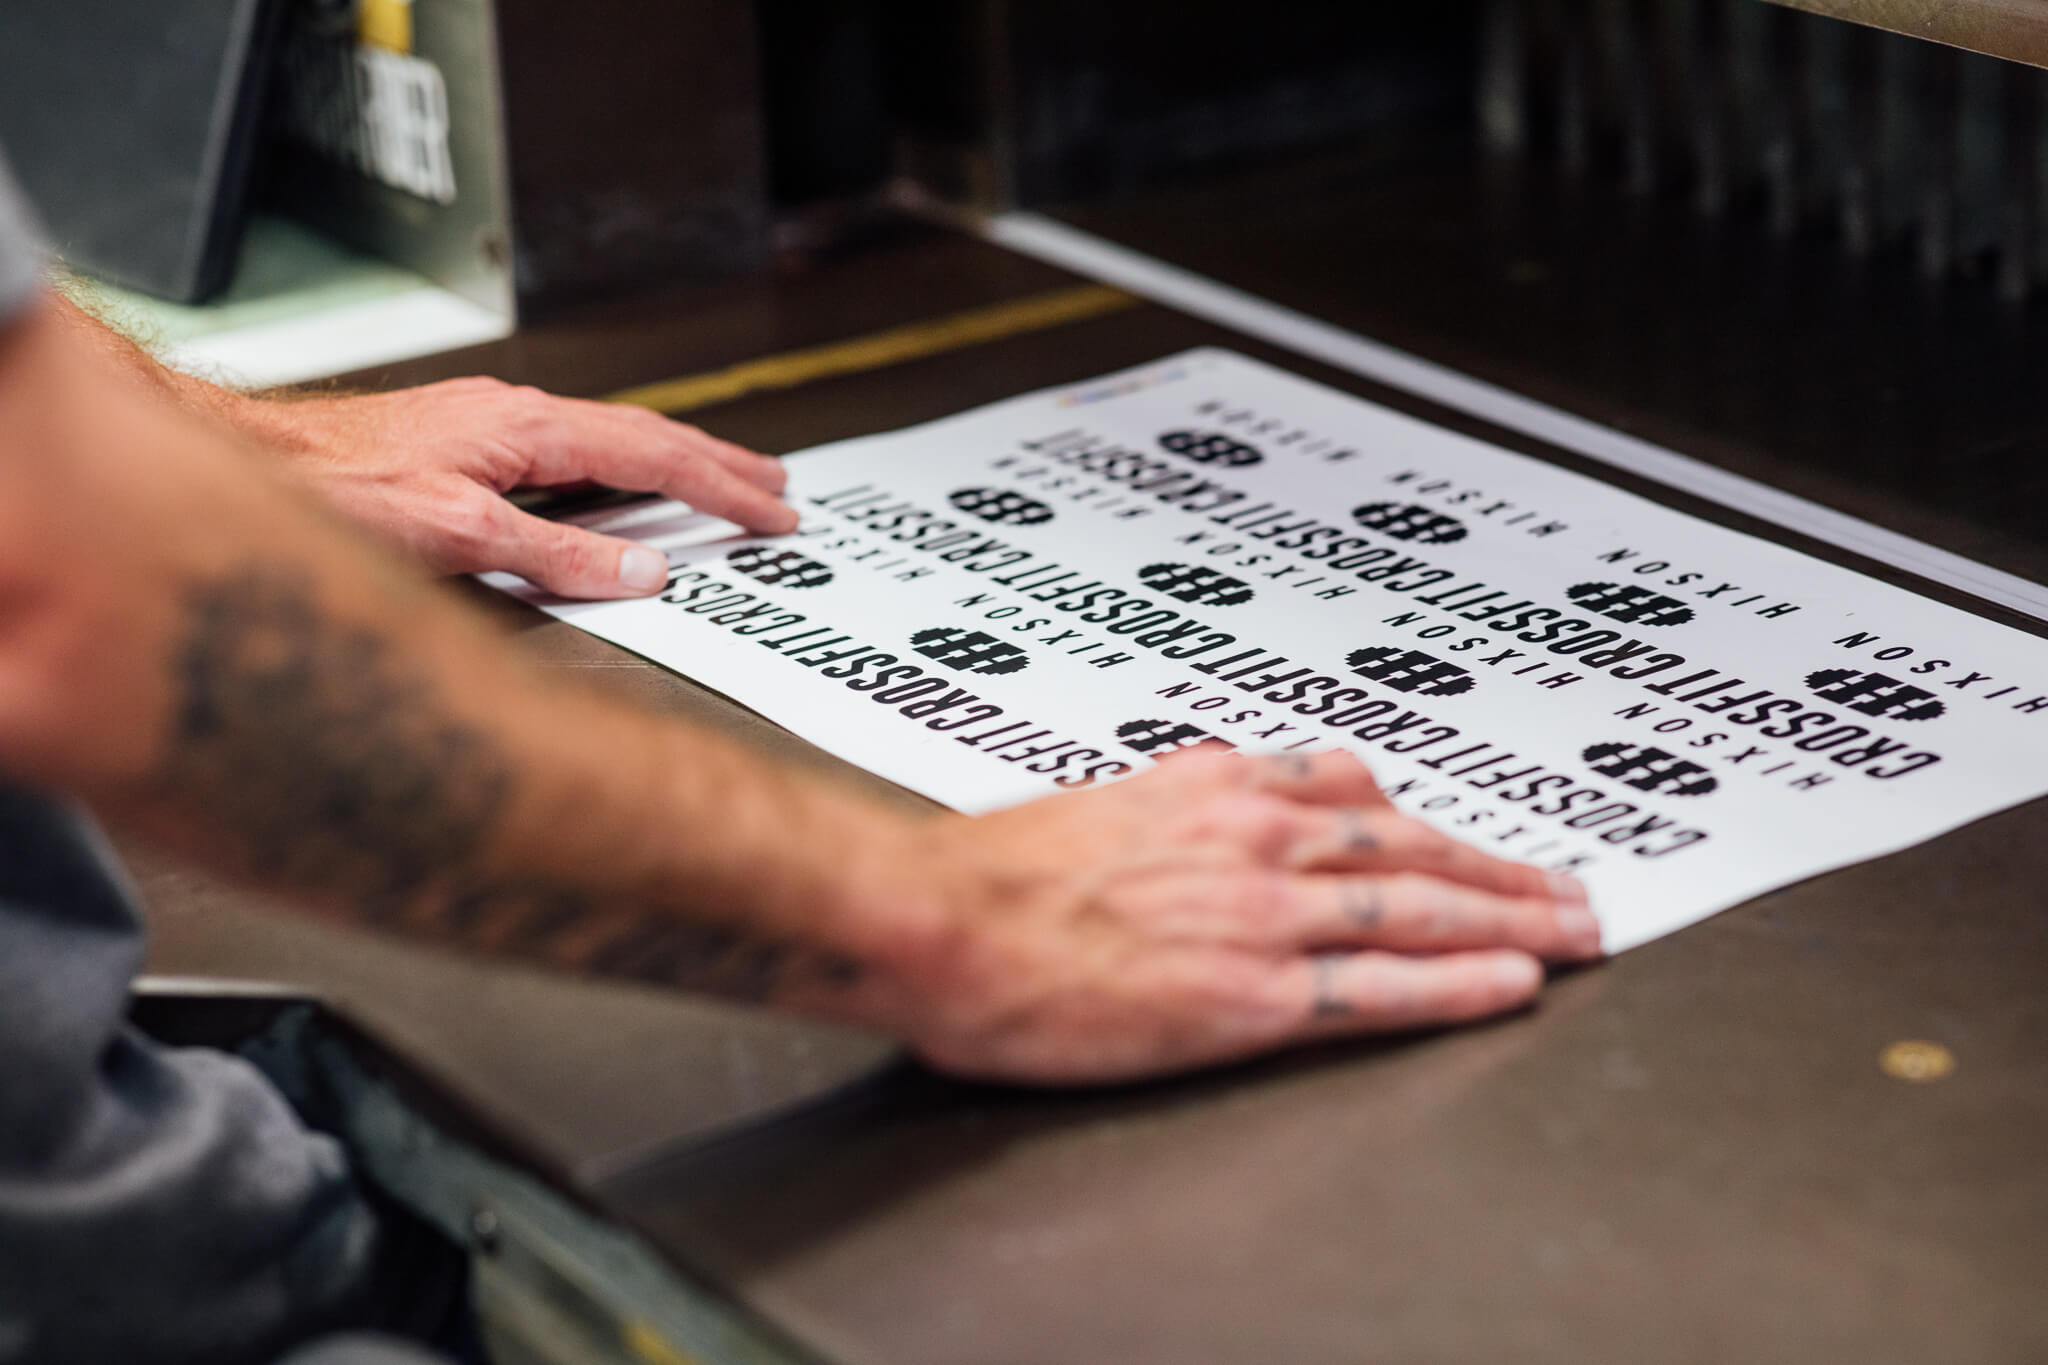 A sheet of decals for Hixson Crossfit gets cut by a guillotine